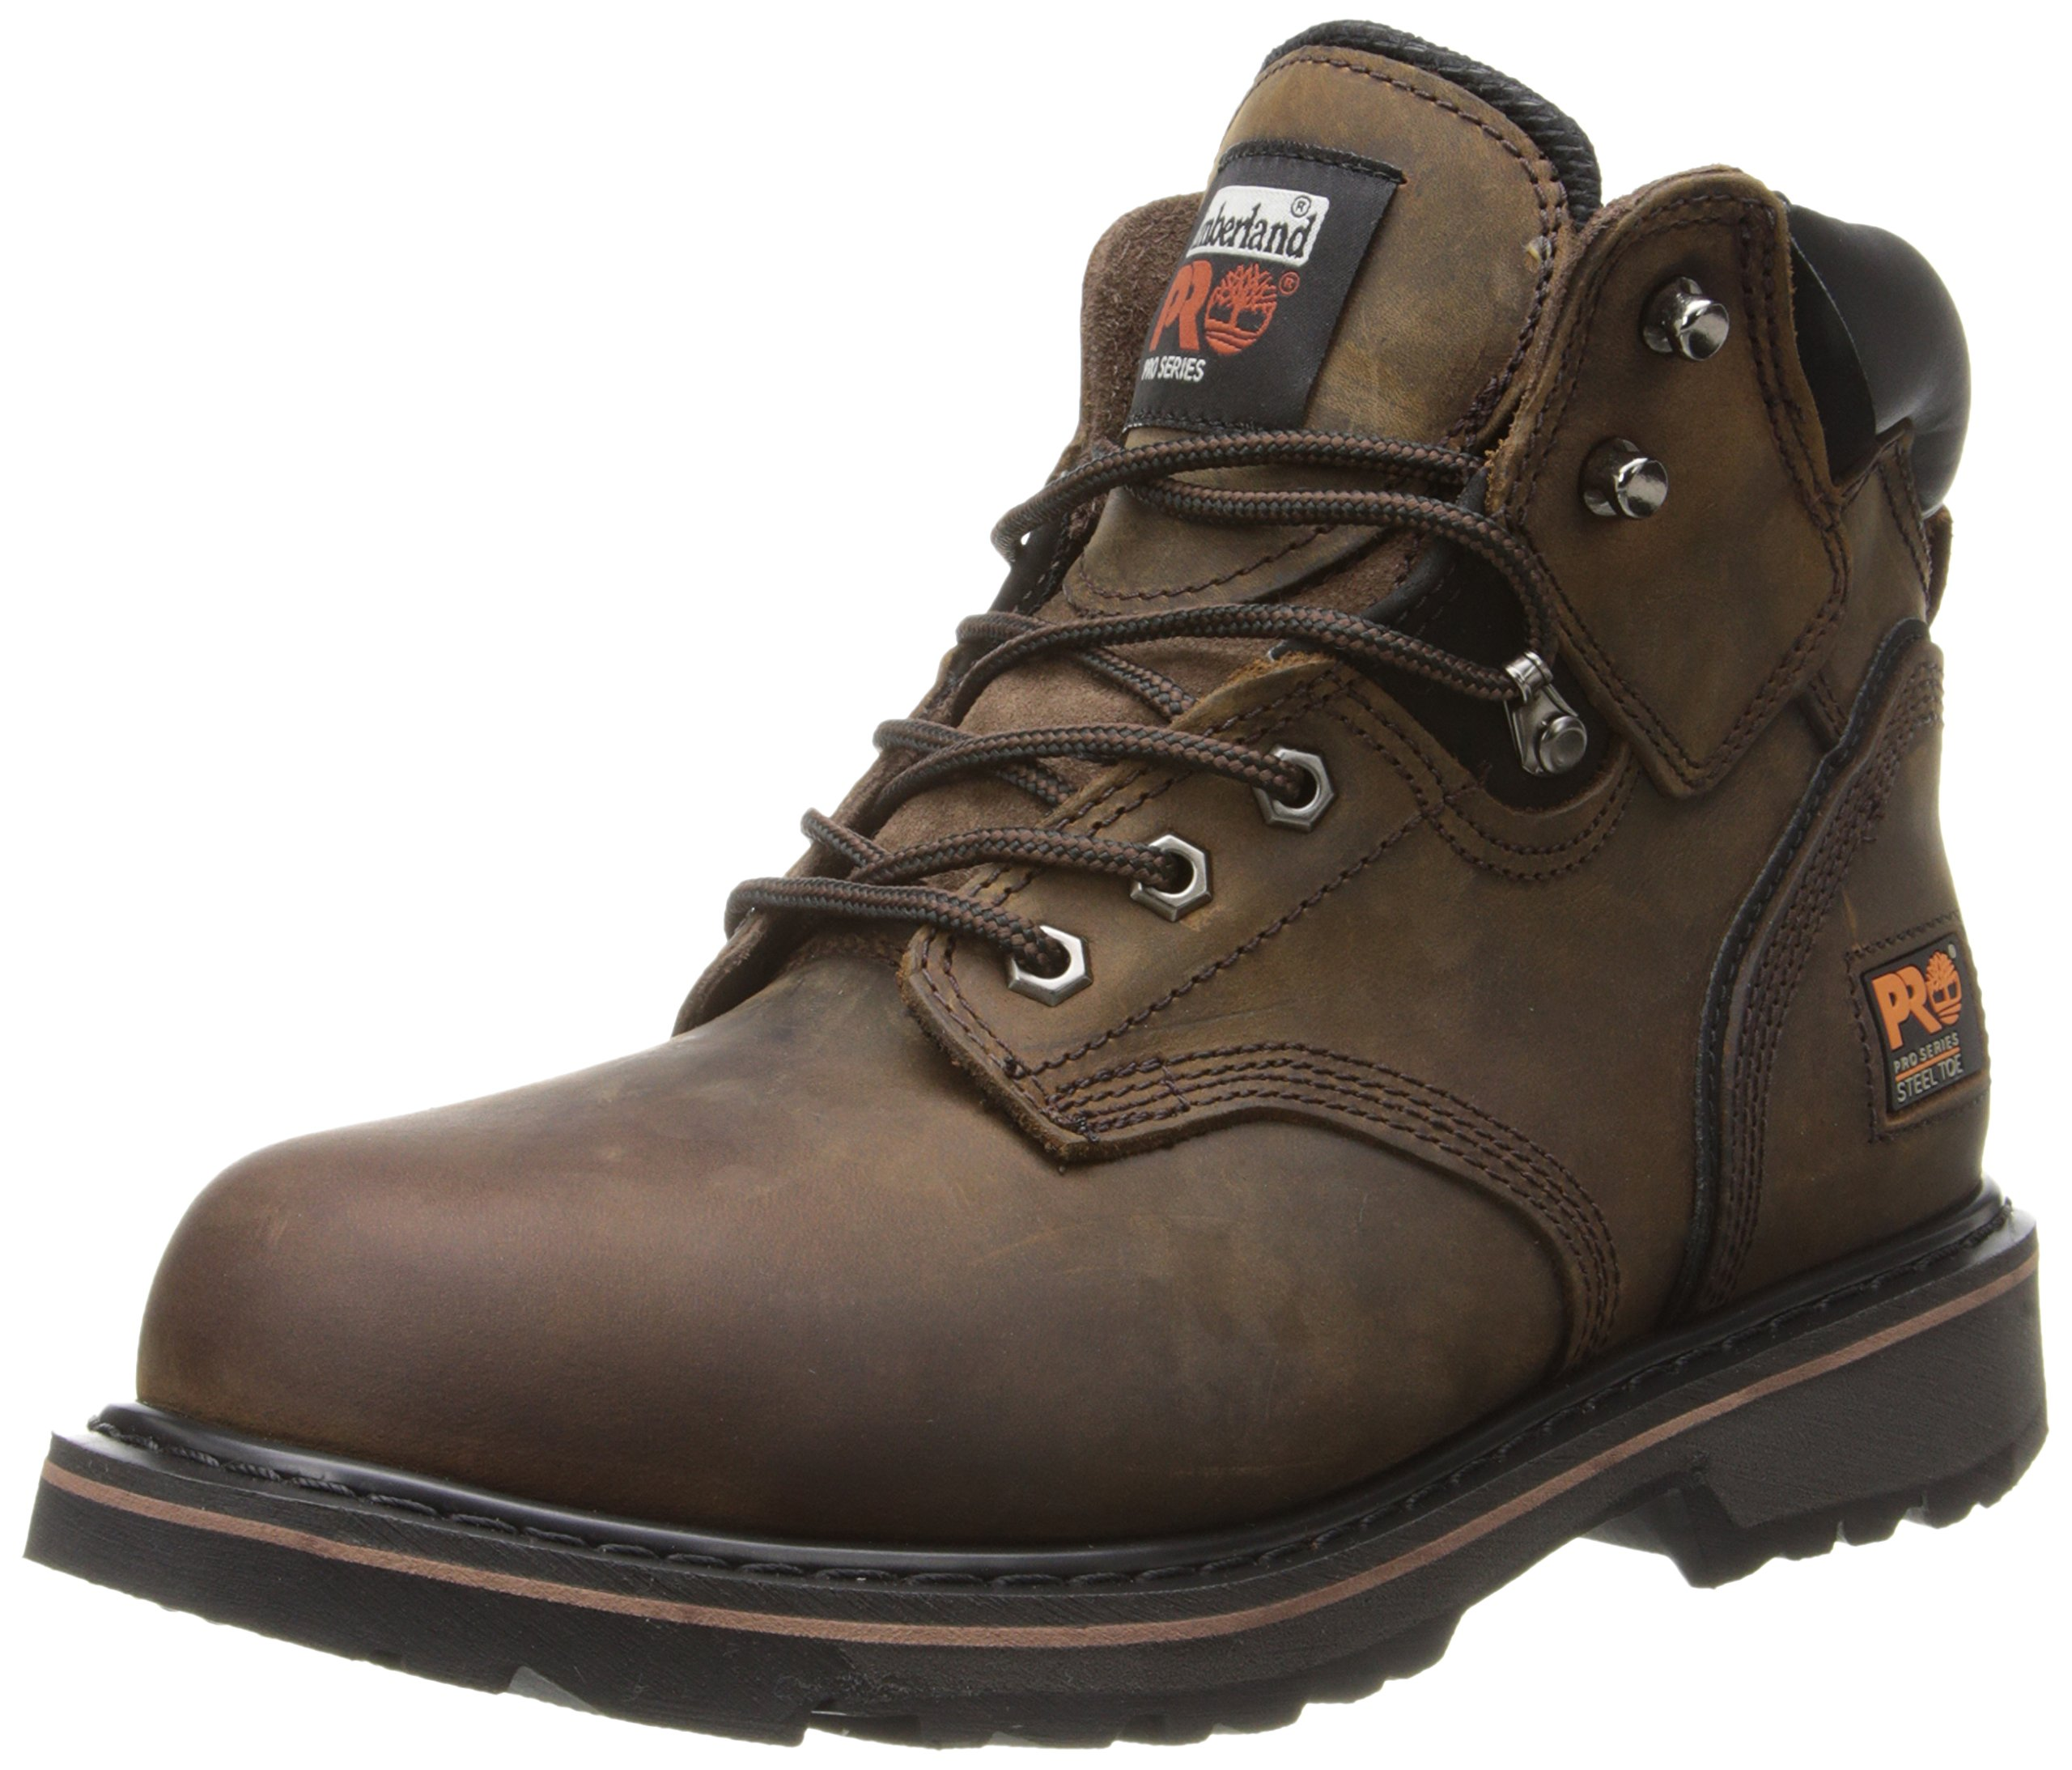 Timberland PRO Men's Pitboss 6'' Steel-Toe Boot, Brown, 11 EE - Wide